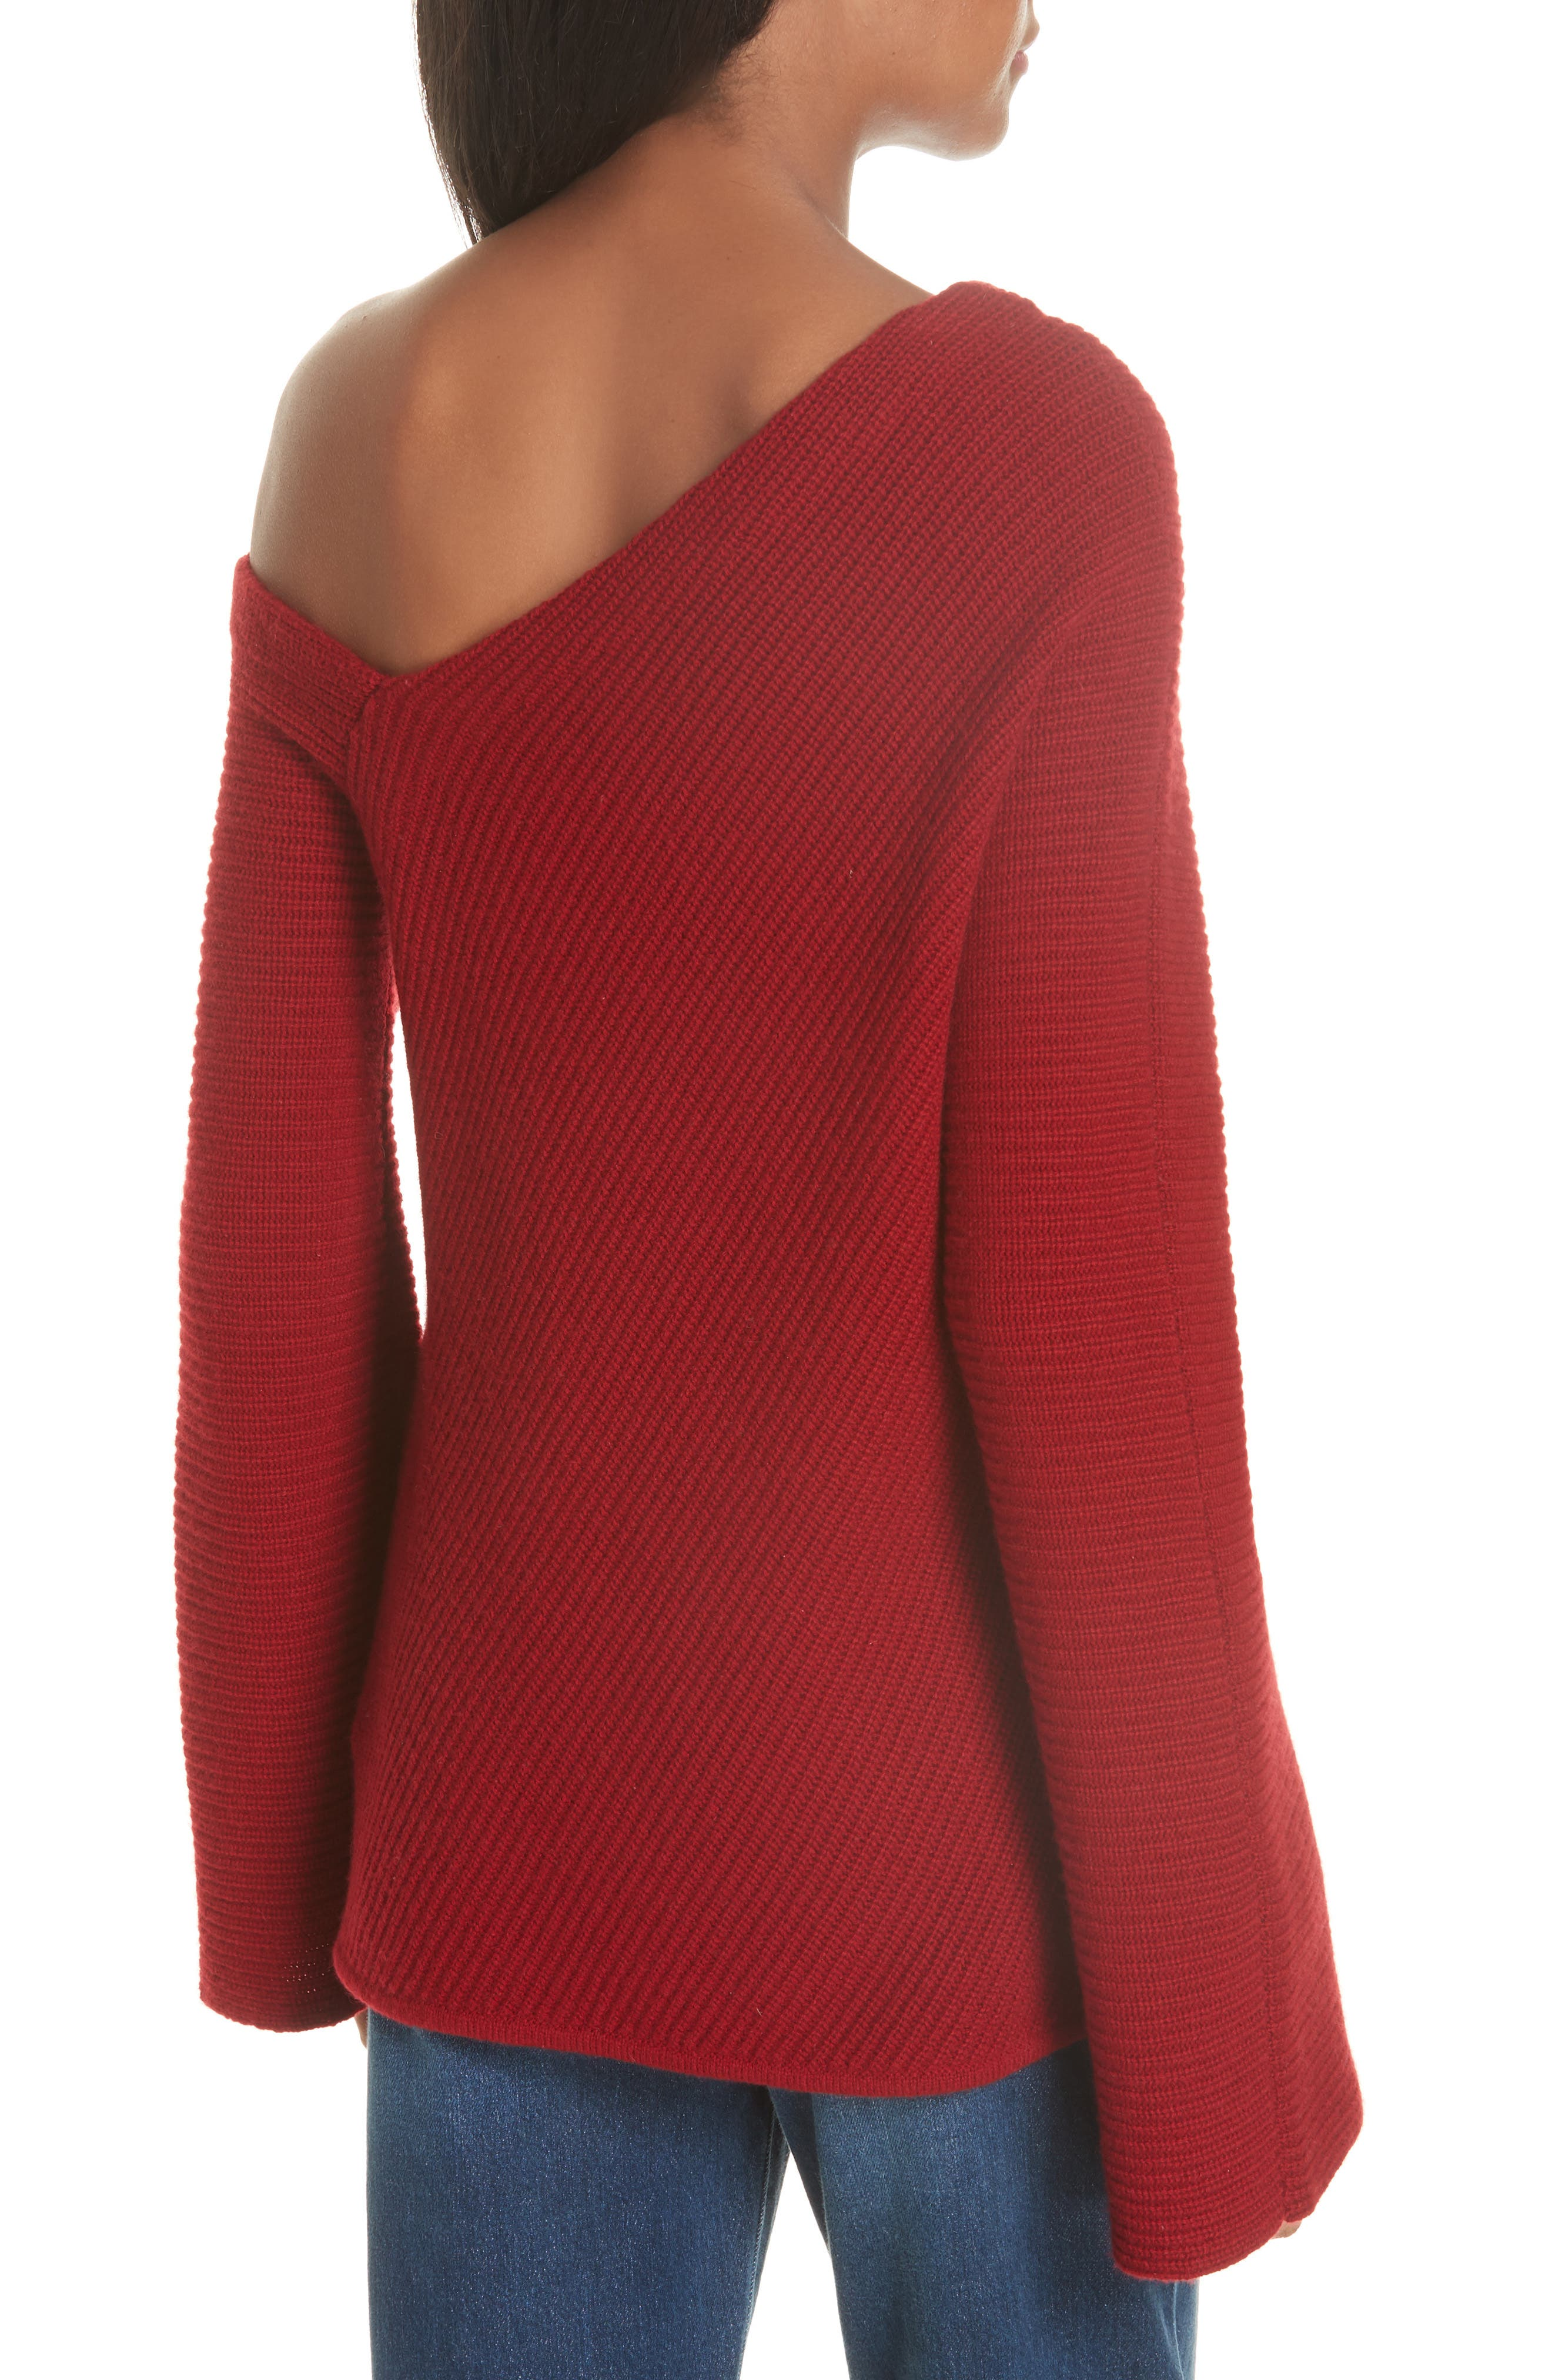 Charly Wool & Cashmere One-Shoulder Sweater,                             Alternate thumbnail 2, color,                             RED